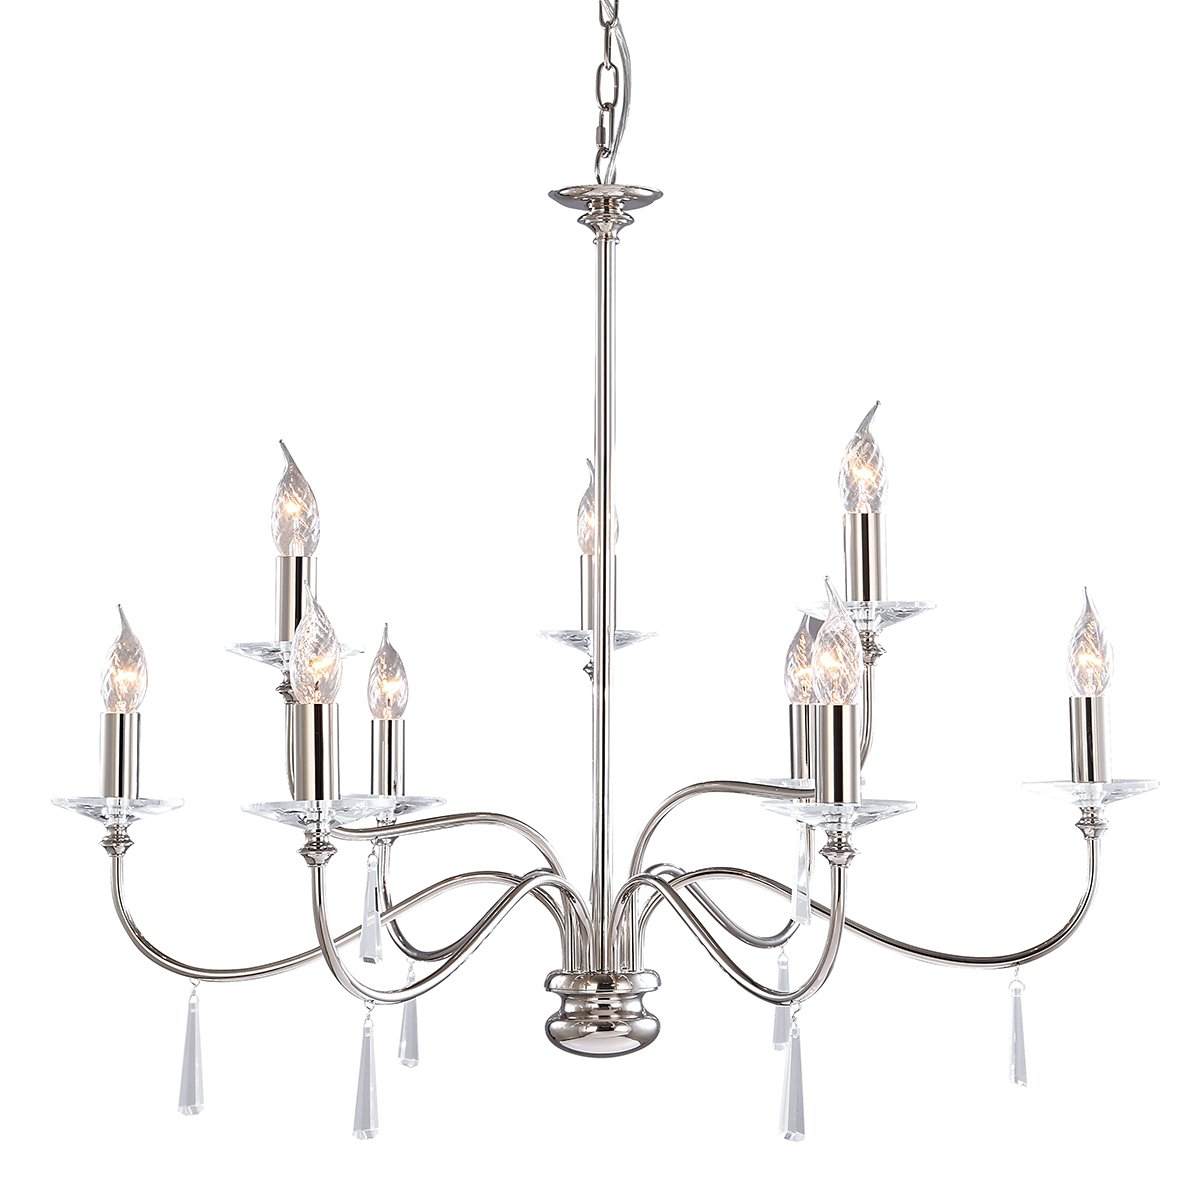 Elstead FP9-PN Finsbury Park 9lt Chandelier, Shades not Included in Polished Nickel